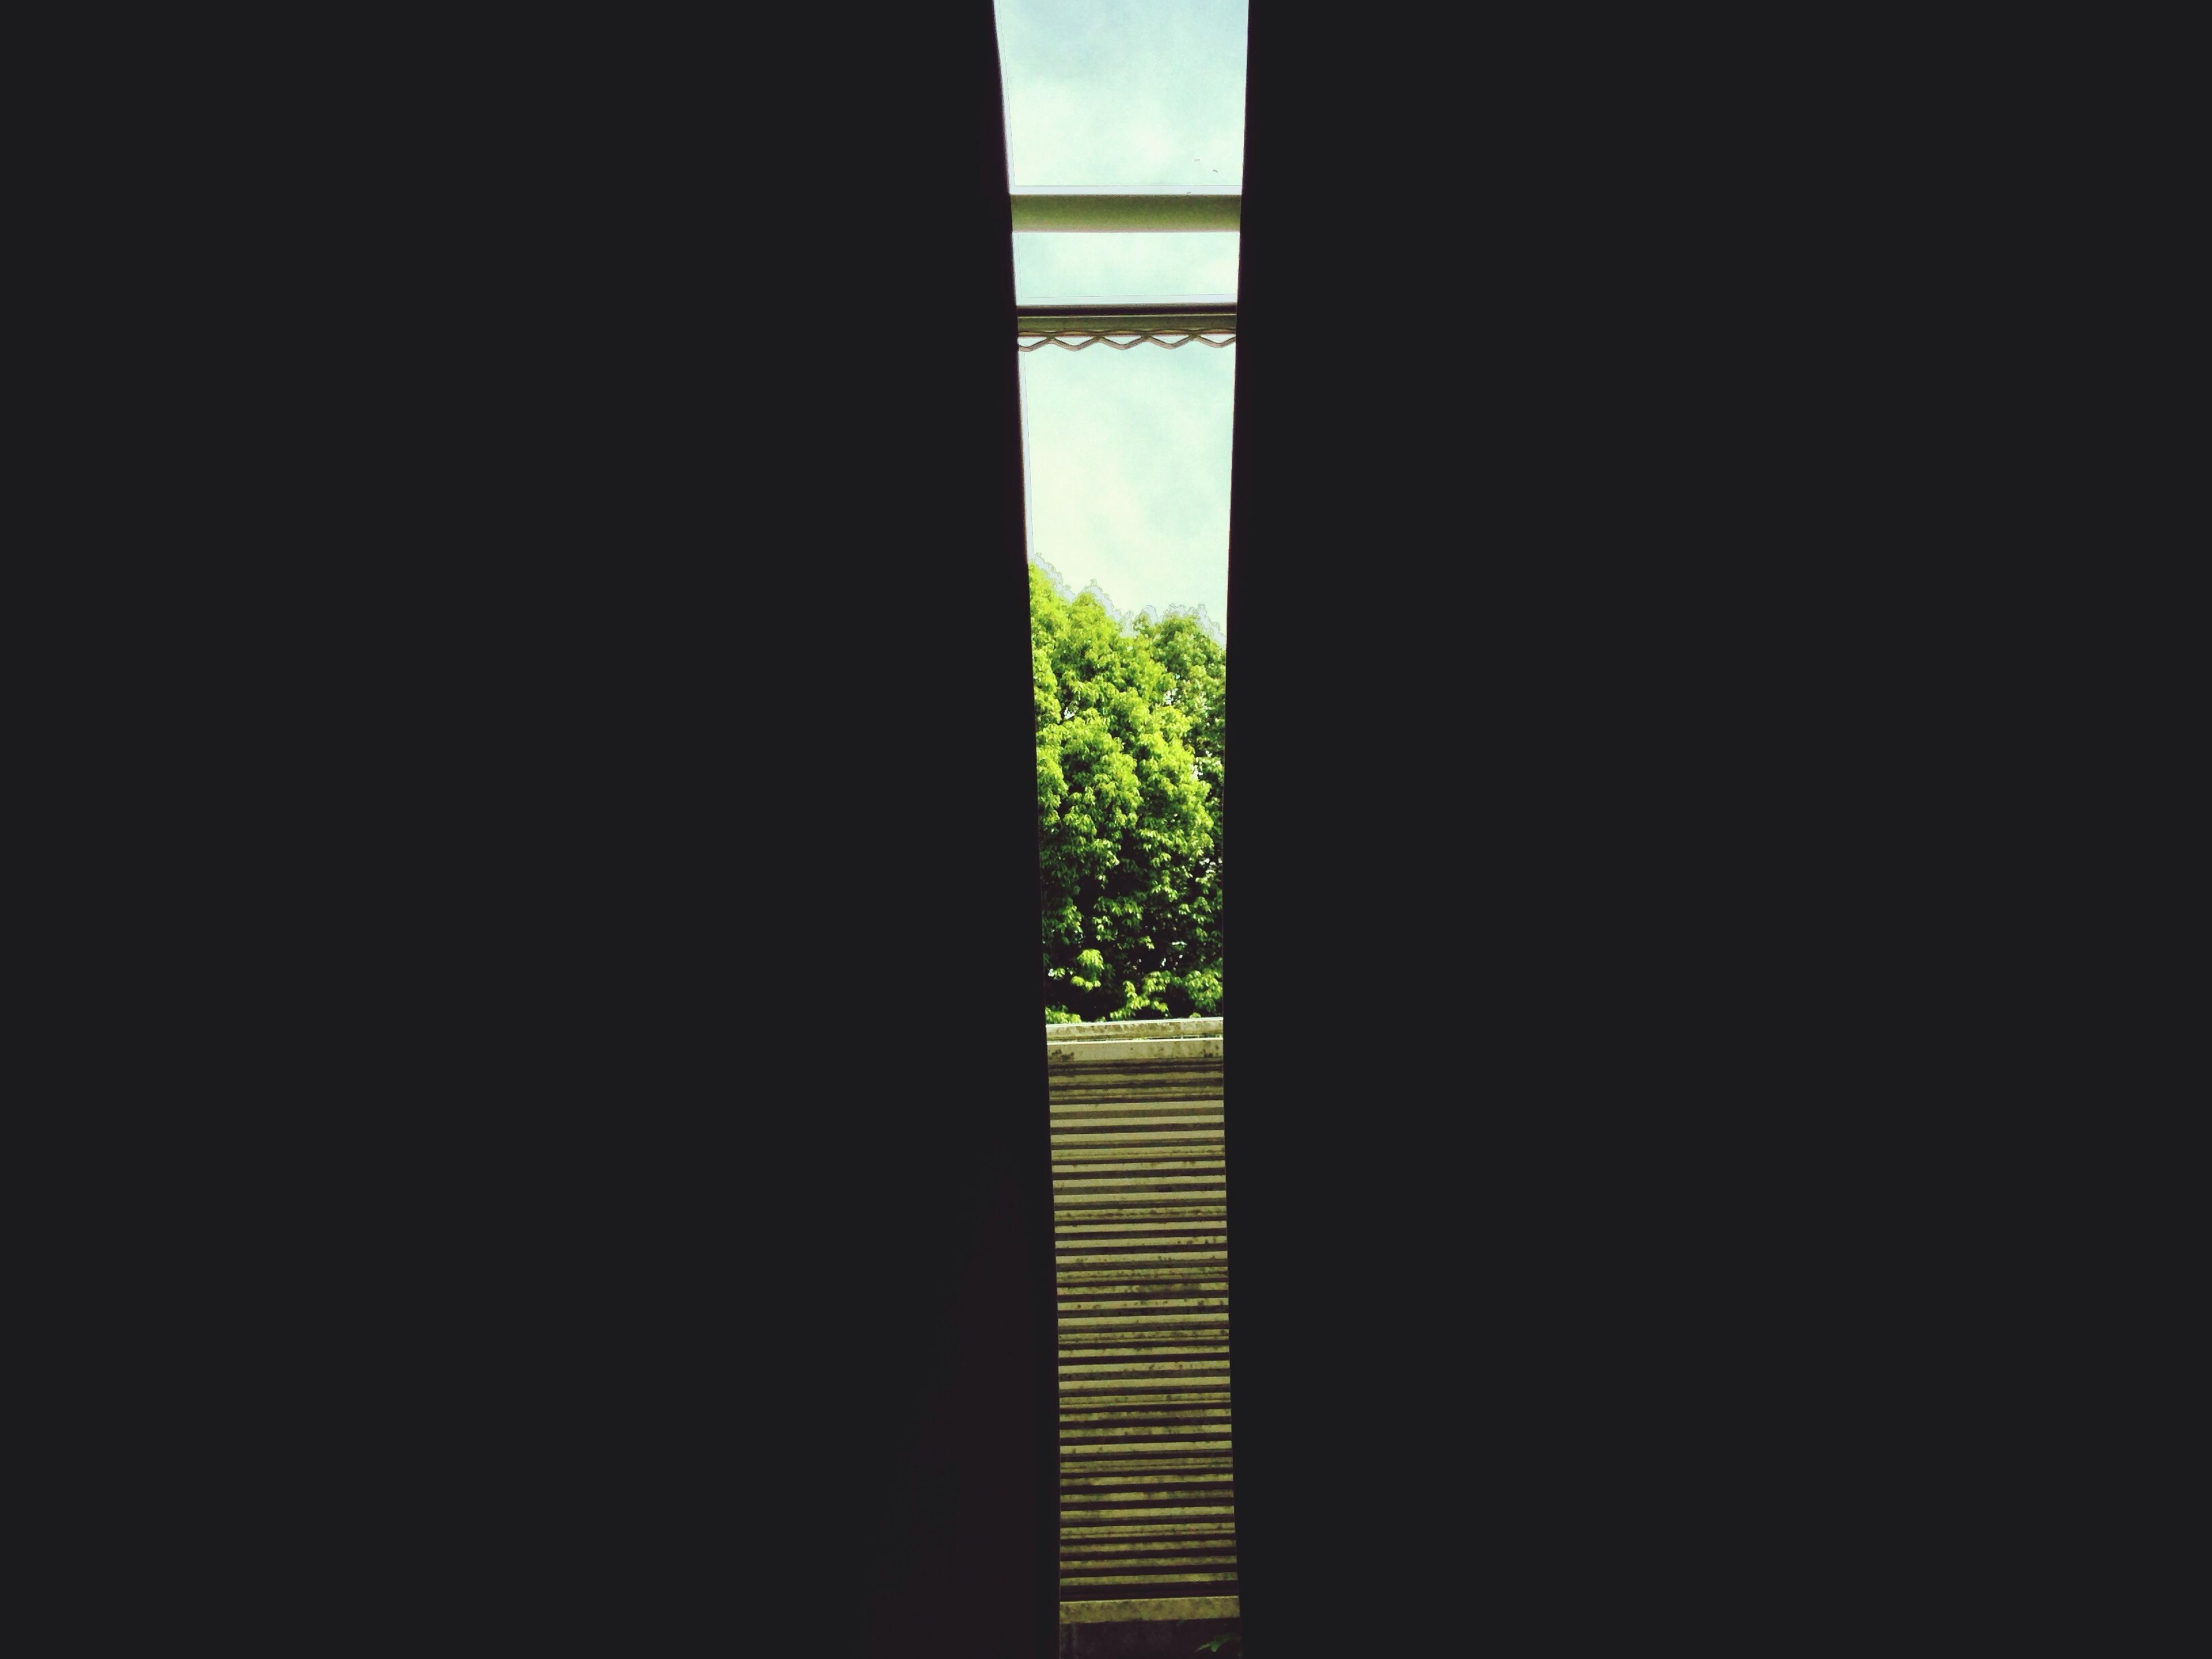 indoors, window, copy space, dark, home interior, built structure, house, architecture, wall - building feature, sunlight, wall, closed, plant, tree, curtain, day, door, silhouette, no people, shadow